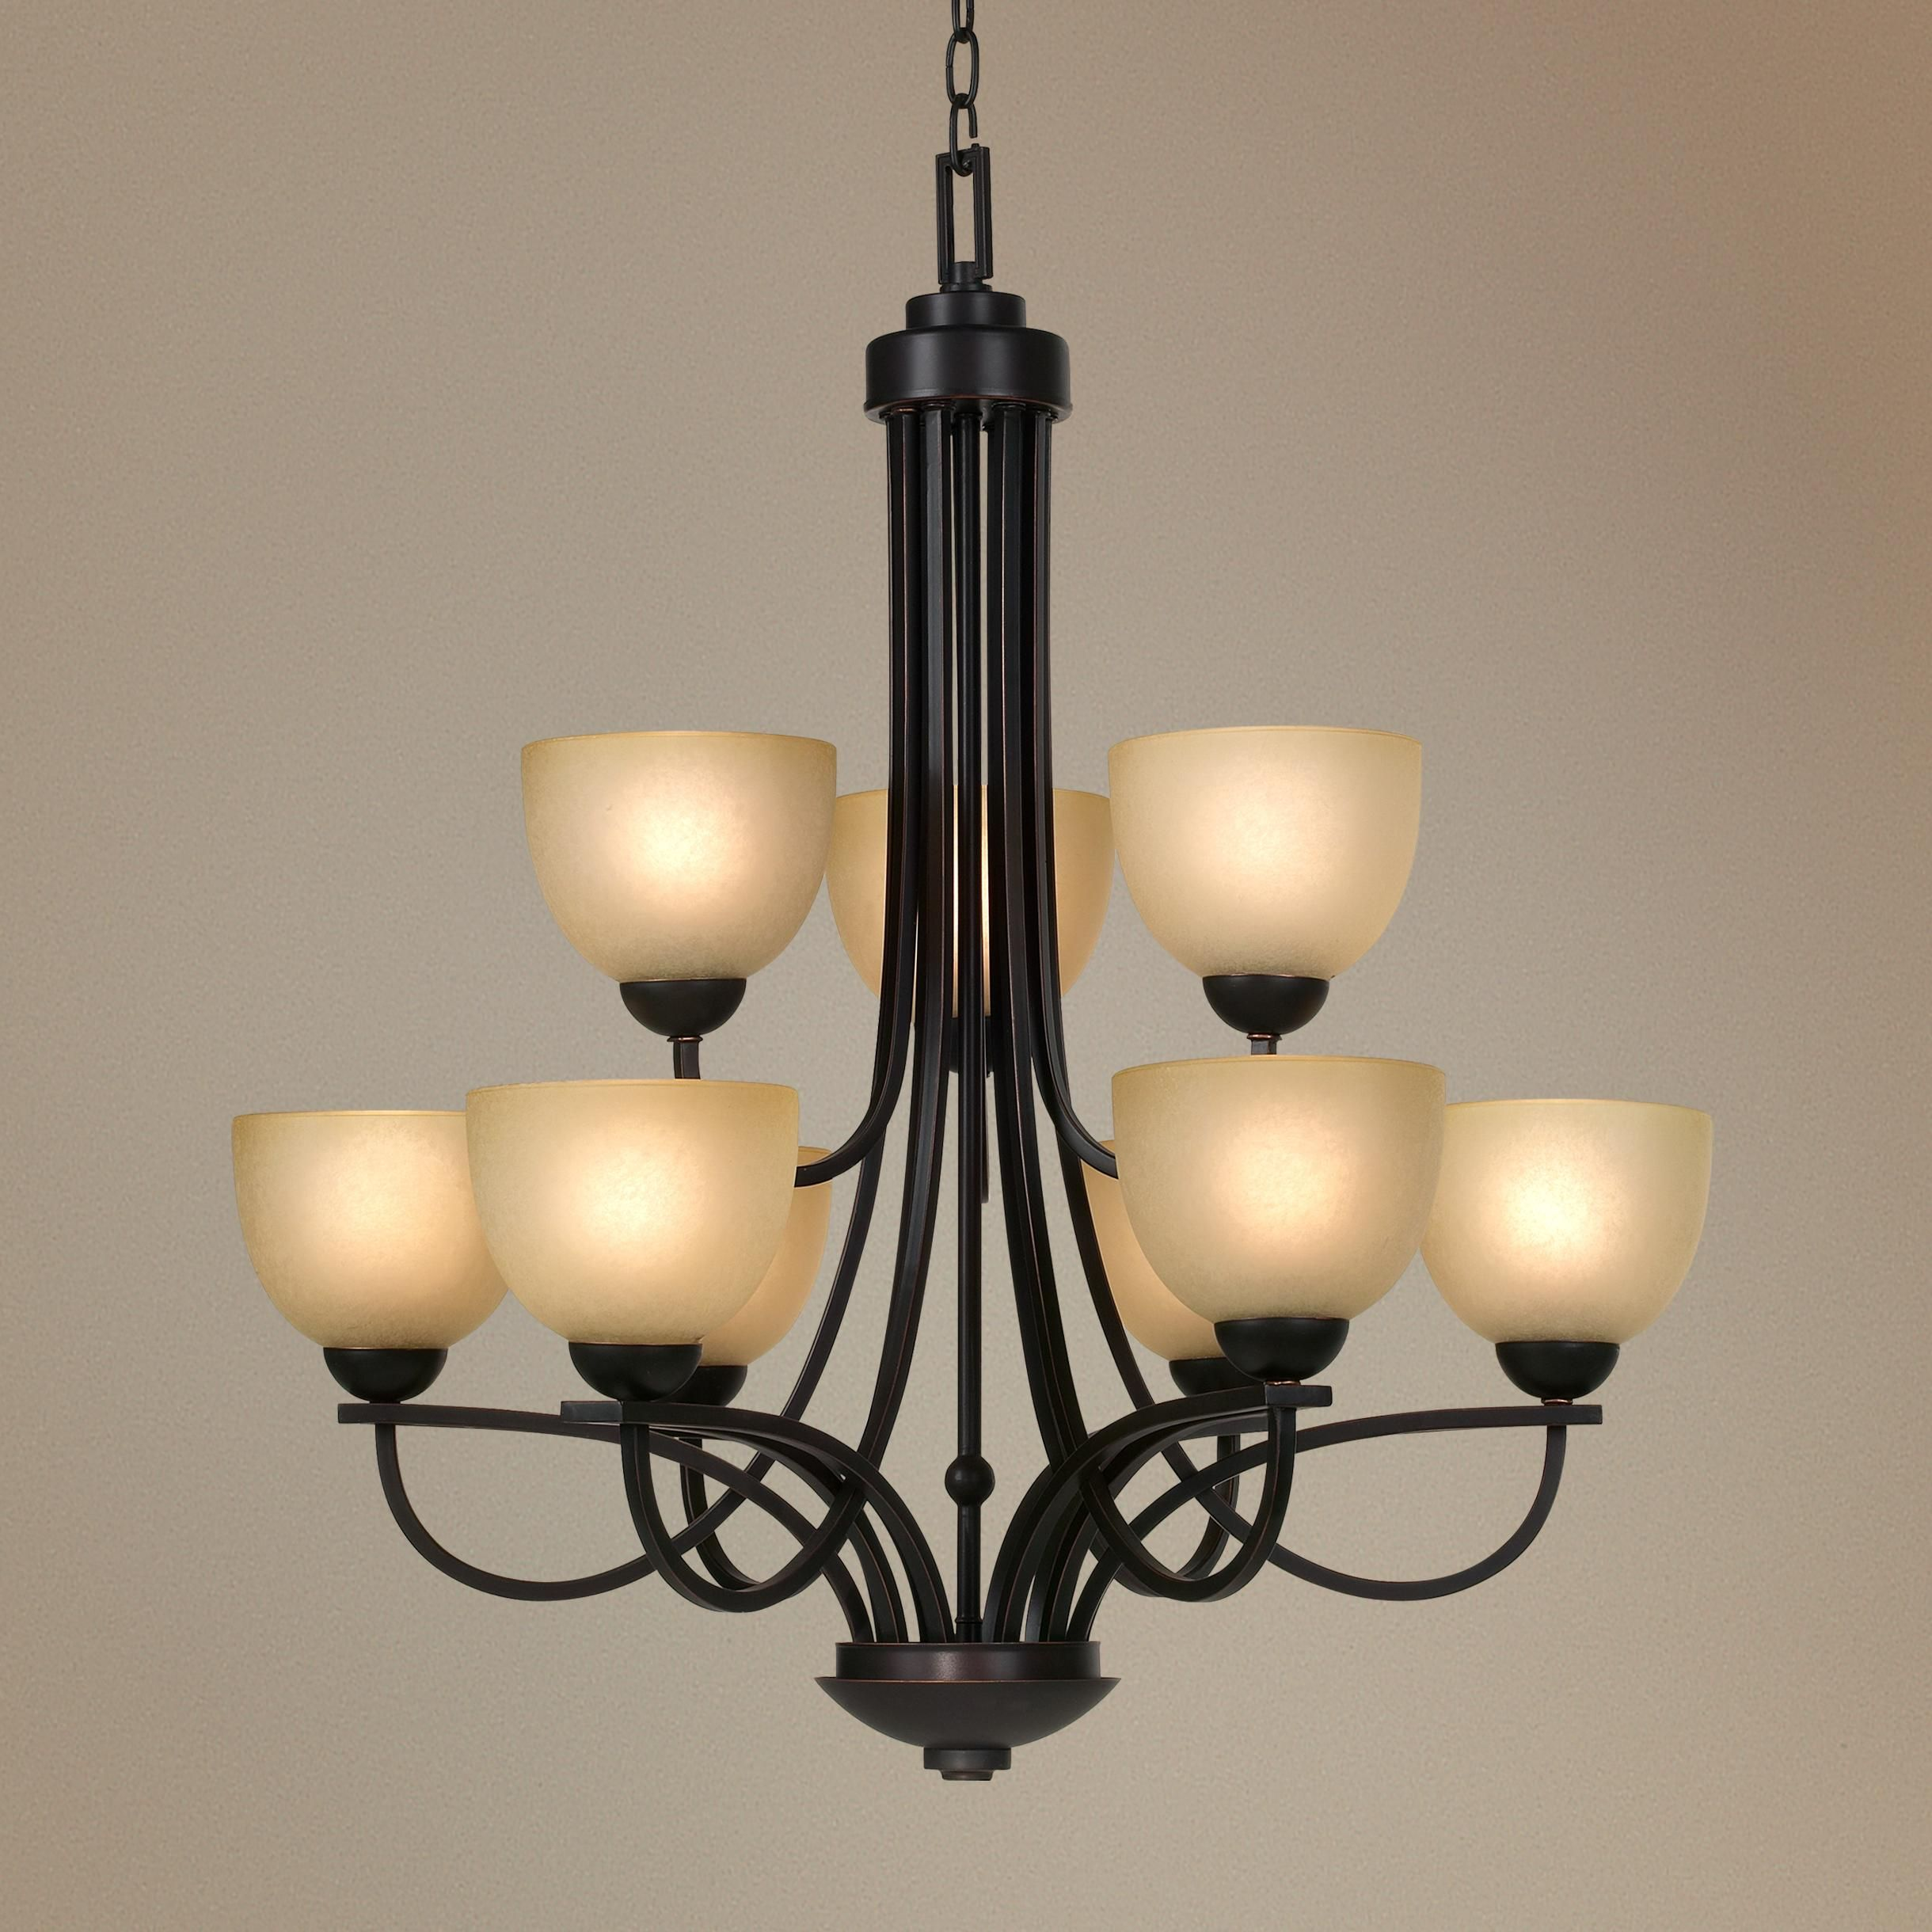 Franklin Iron Works Bennington Collection 9 Light Chandelier Style